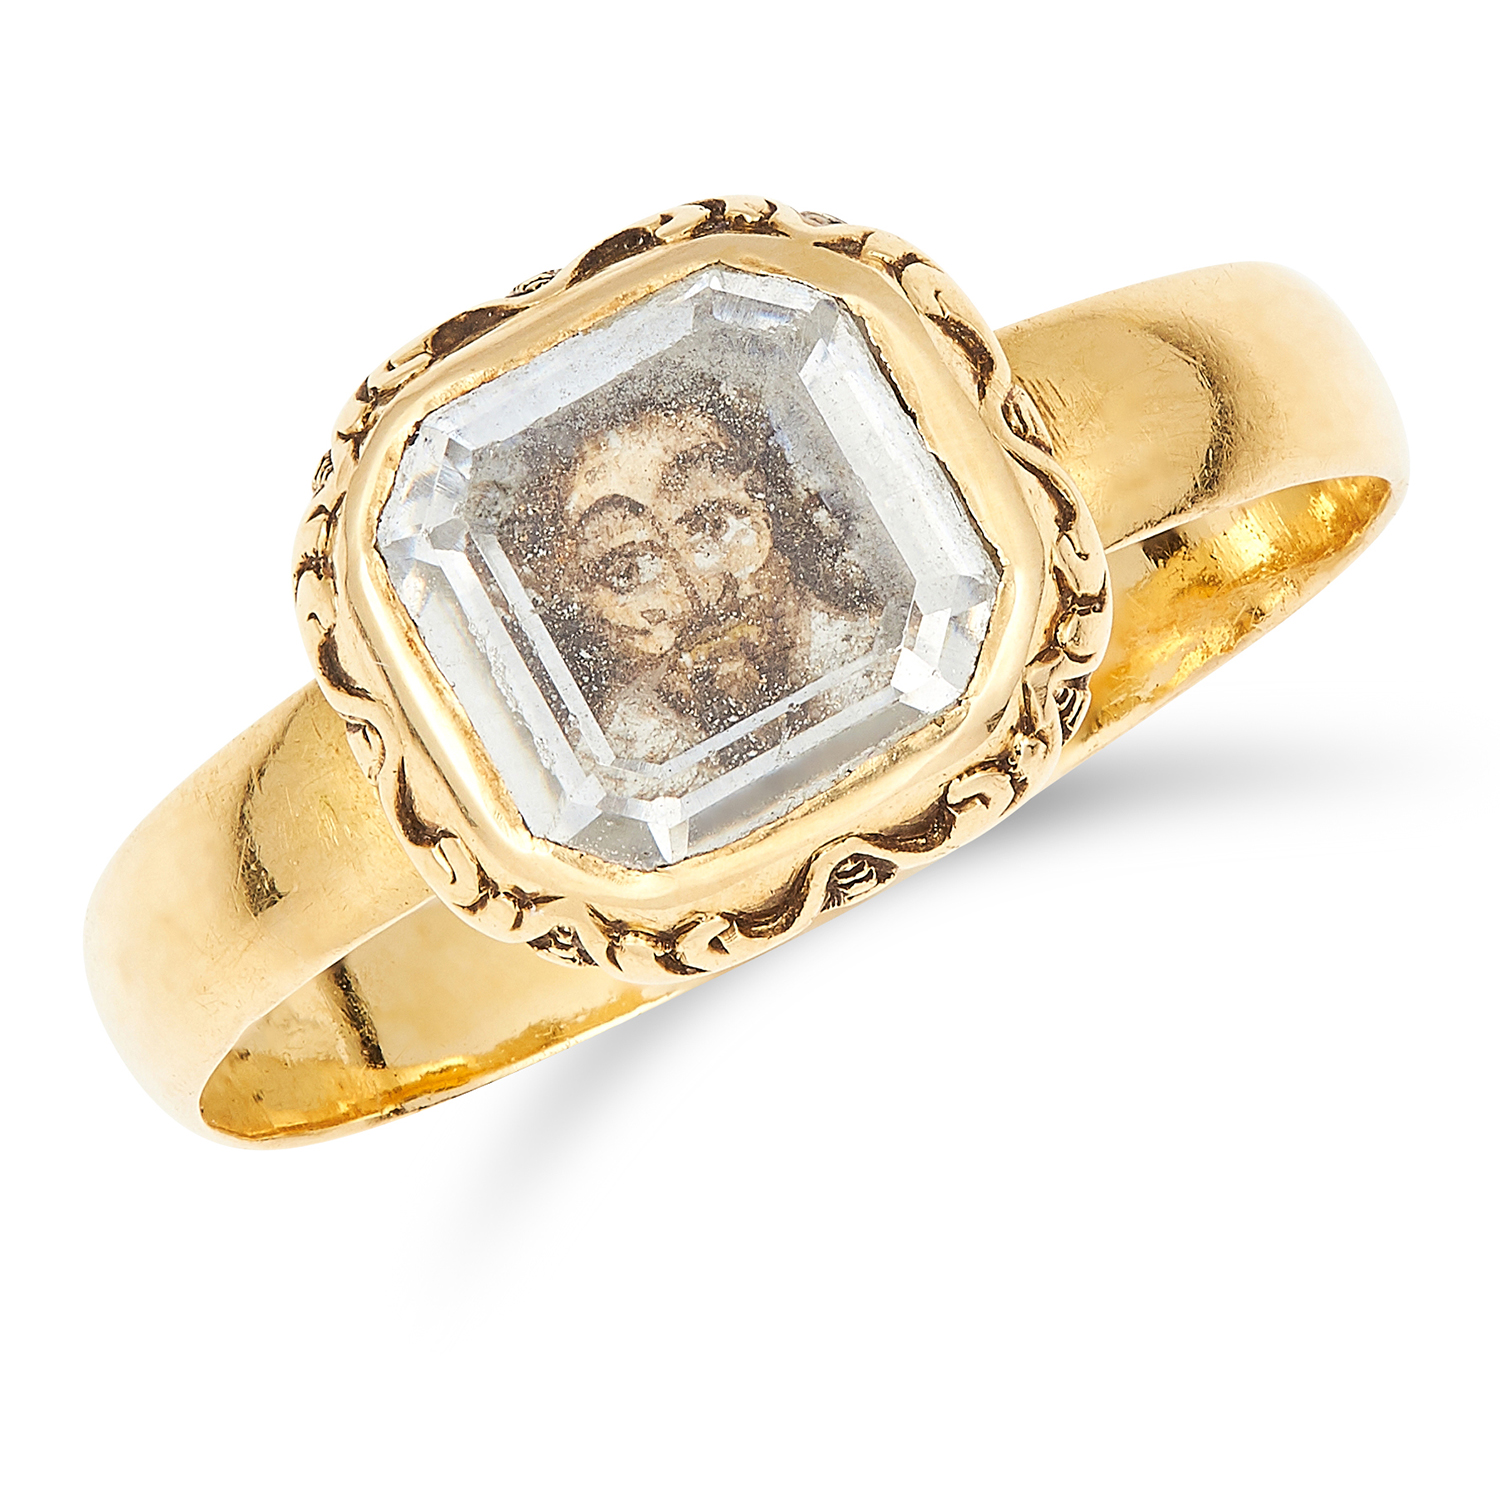 ANTIQUE STUART CRYSTAL MEMENTO PORTRAIT MINIATURE RING, 17TH CENTURY in yellow gold, set with a